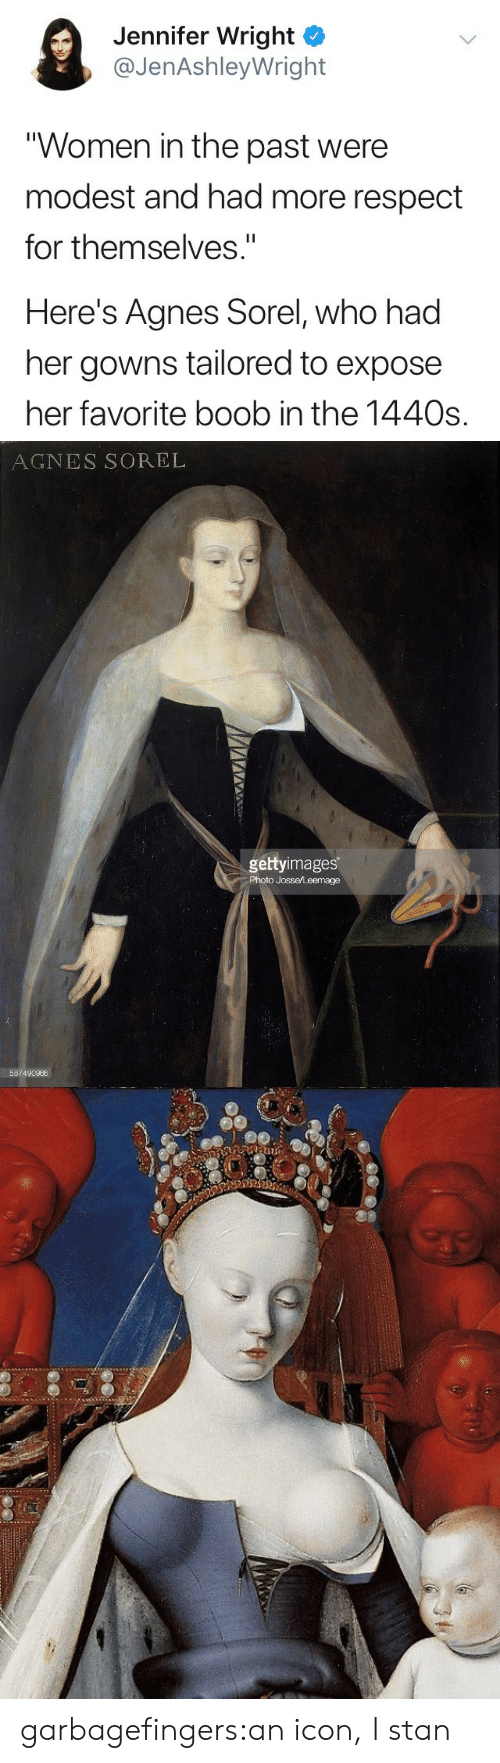 "modest: Jennifer Wright ^  @JenAshleyWright  Women in the past were  modest and had more respect  for themselves""  Here's Agnes Sorel, who had  her gowns tailored to expose  her favorite boob in the 1440s.   AGNES SOREL  gettyimages  Photo Josse/Leemage  587490966 garbagefingers:an icon, I stan"